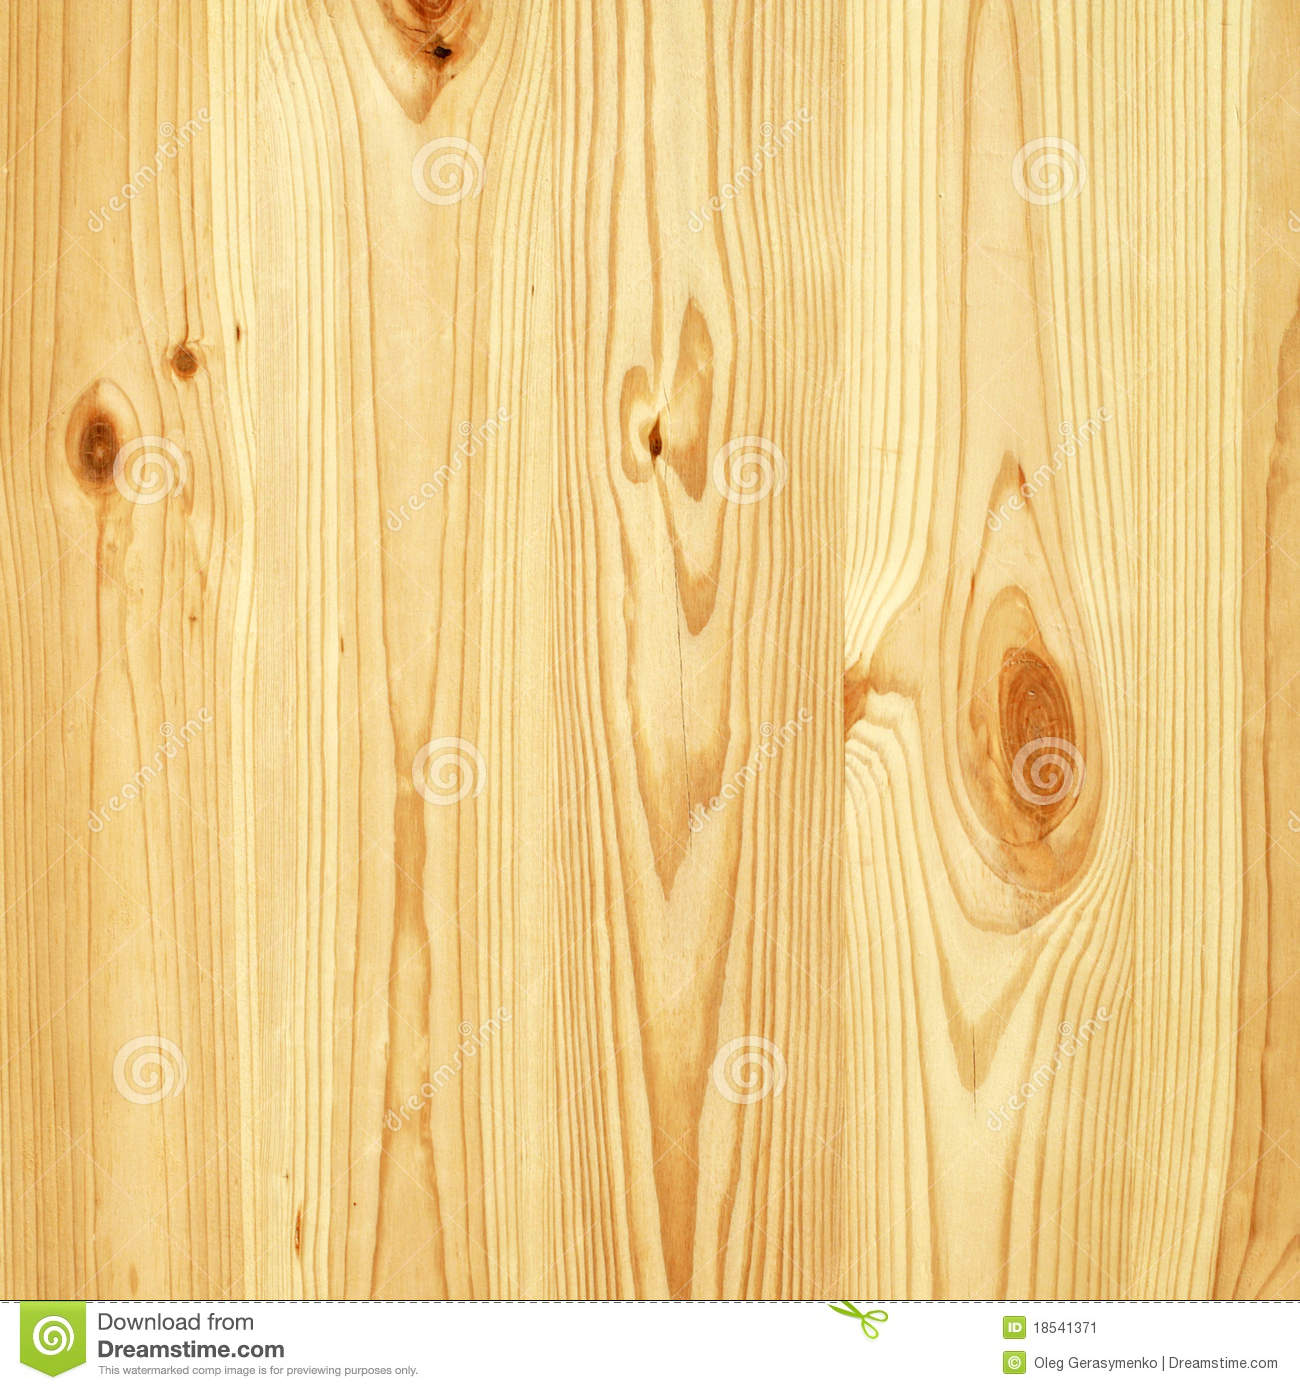 Stock Image Pine Tree Wall Texture Image18541371 on A Frame Building Plans